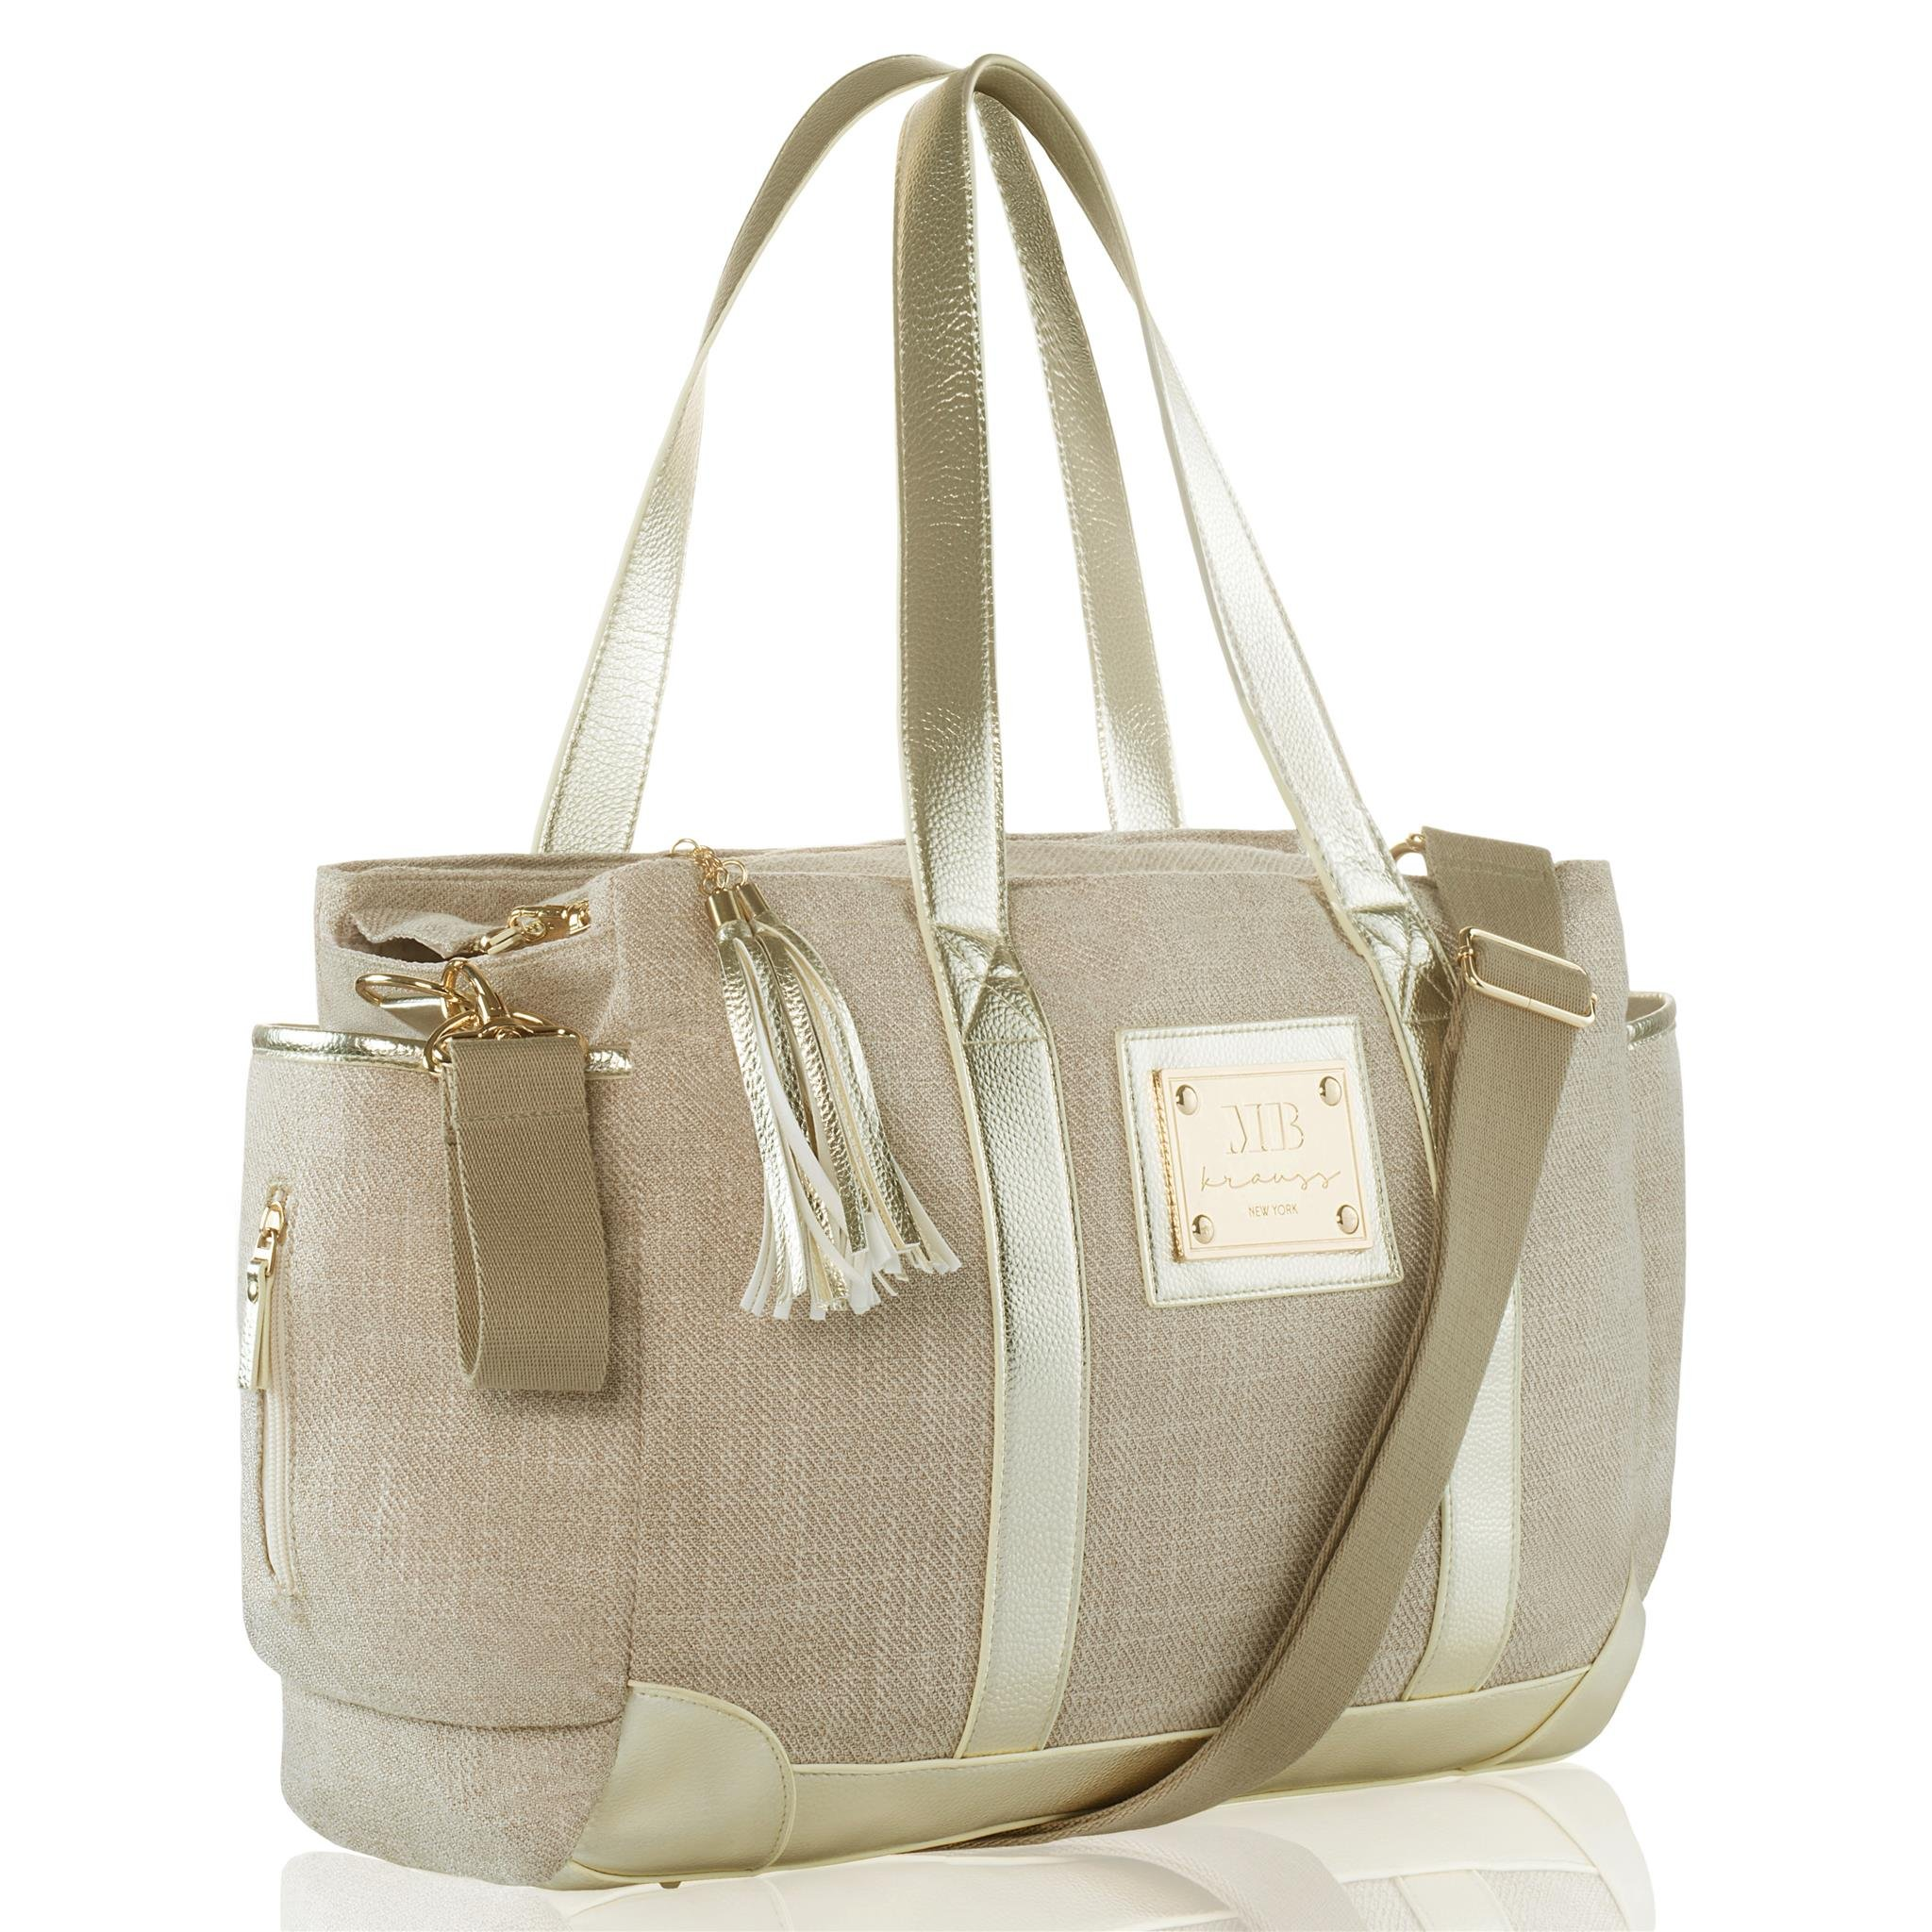 MB KRAUSS Large Diaper Bag Stylish Tote for Mom and Dad Baby    Organizer    Bag for Boys and Girls with Changing Pad   and Big Pockets (Beige) by MB KRAUSS